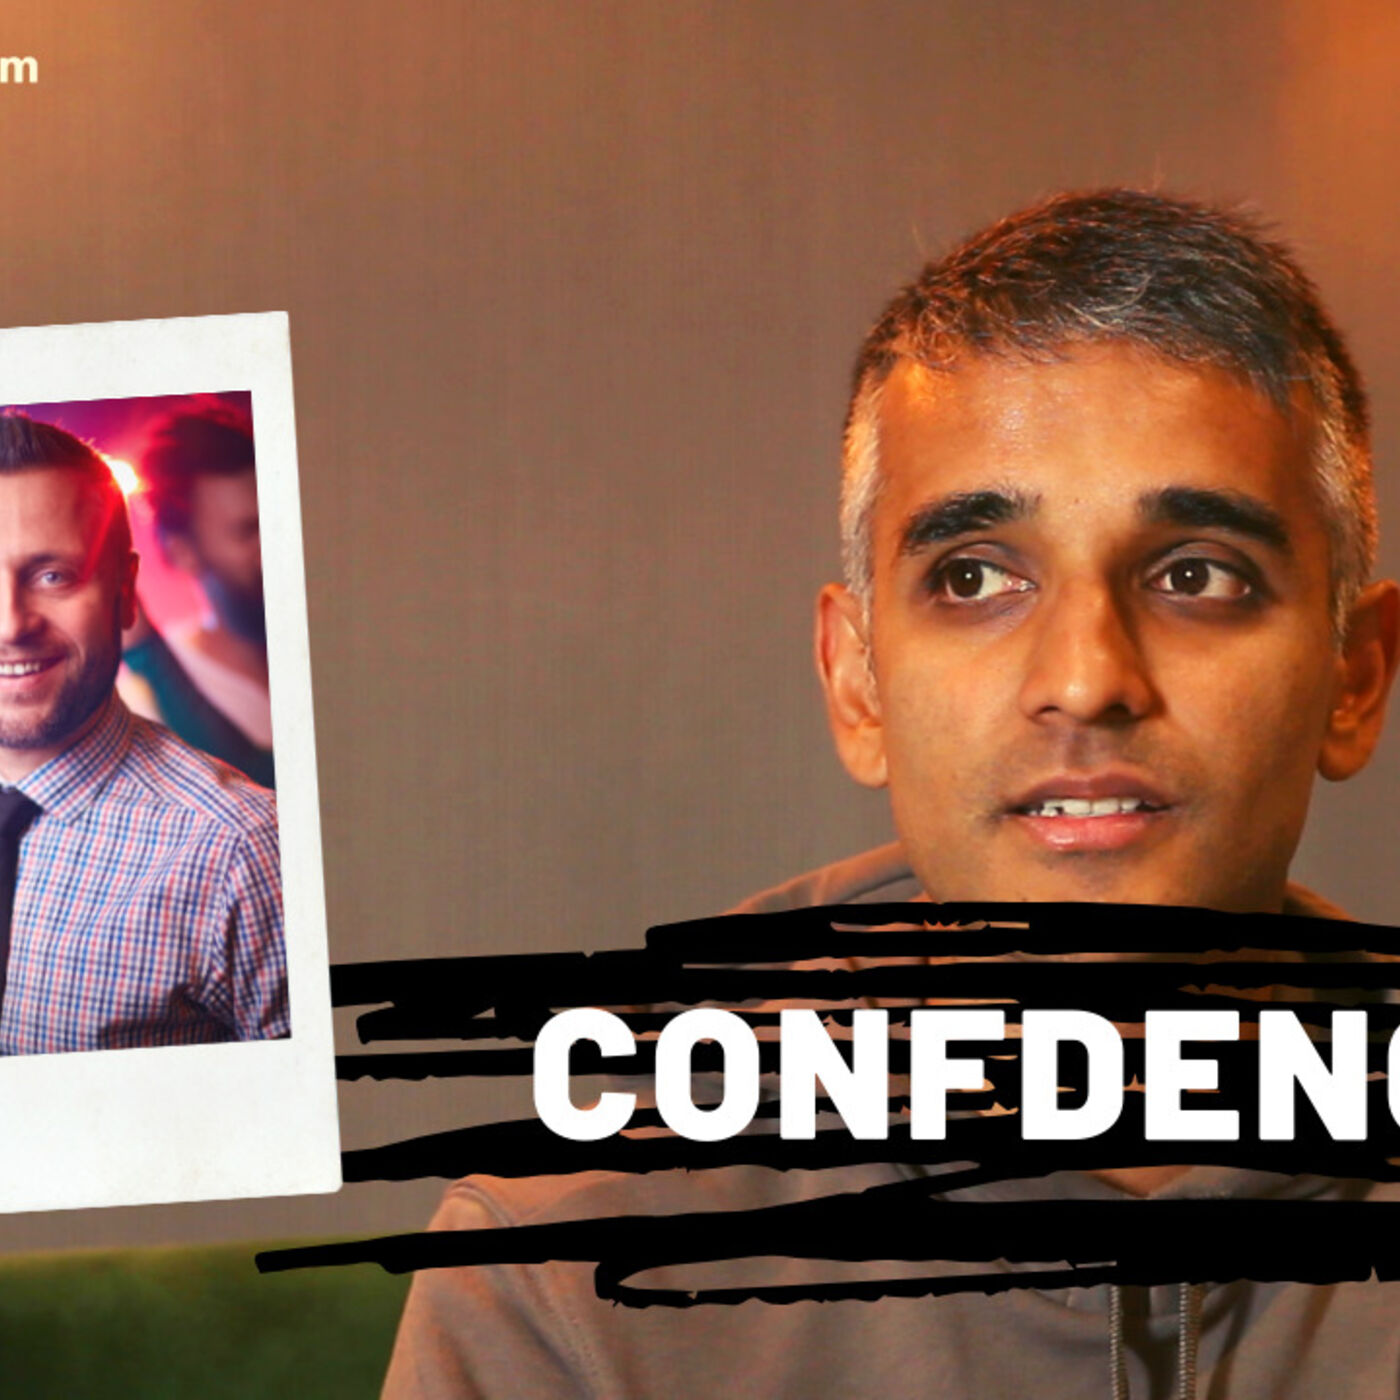 How to Learn and Practice Confidence